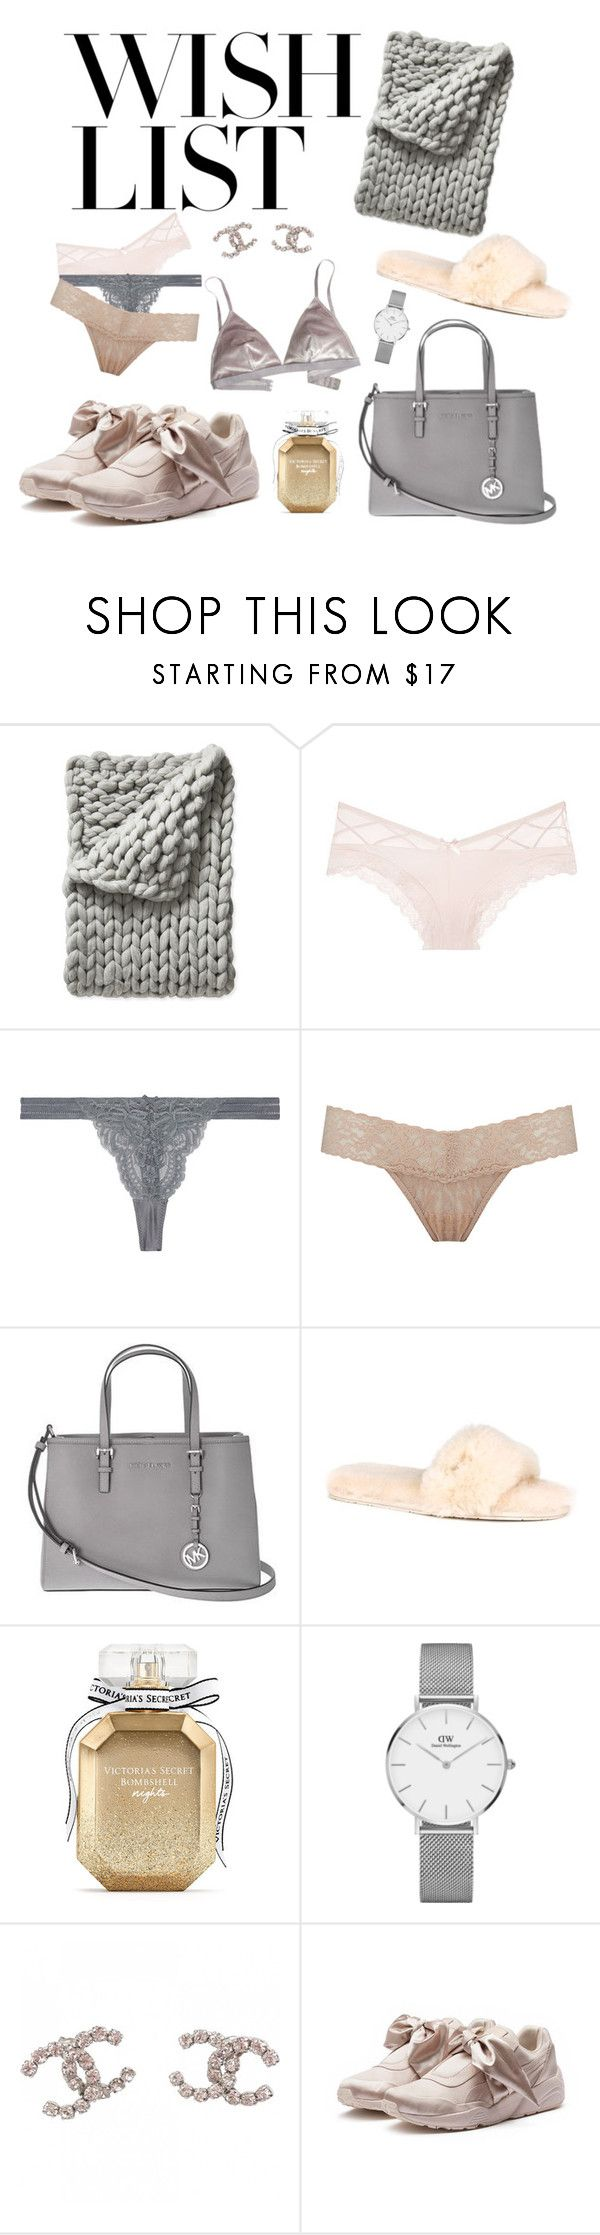 """#PolyPresents: Wish List"" by stellasfashion0 ❤ liked on Polyvore featuring Serena & Lily, Victoria's Secret, STELLA McCARTNEY, Hanky Panky, Michael Kors, UGG Australia, Daniel Wellington, Chanel, Puma and Madewell"